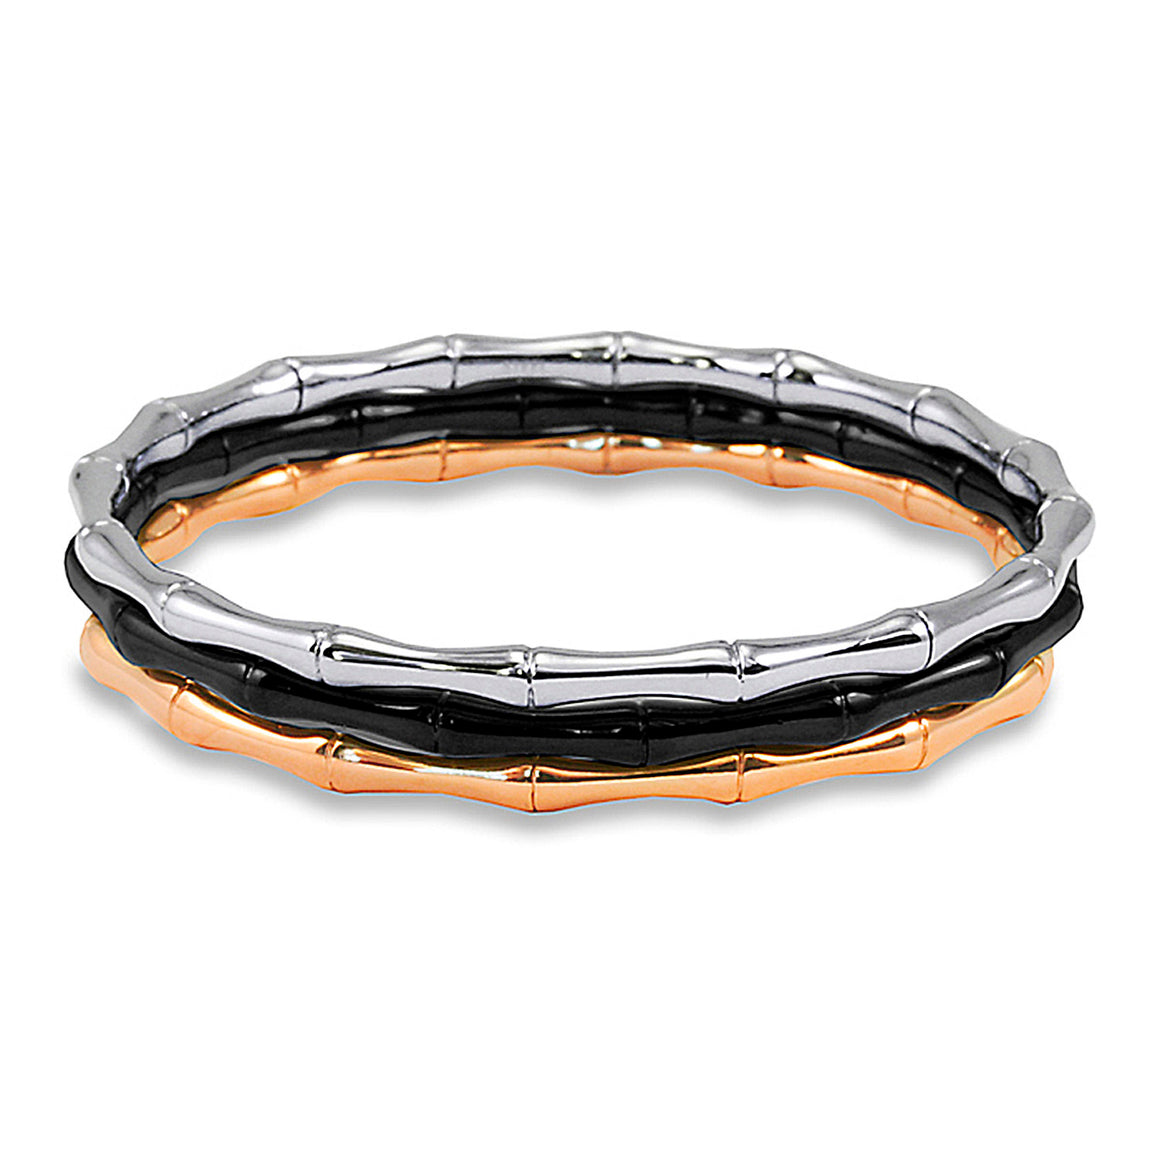 Stackable Bamboo Design Tri-Color Stainless Steel Bangle Bracelets (4 mm) - 8""